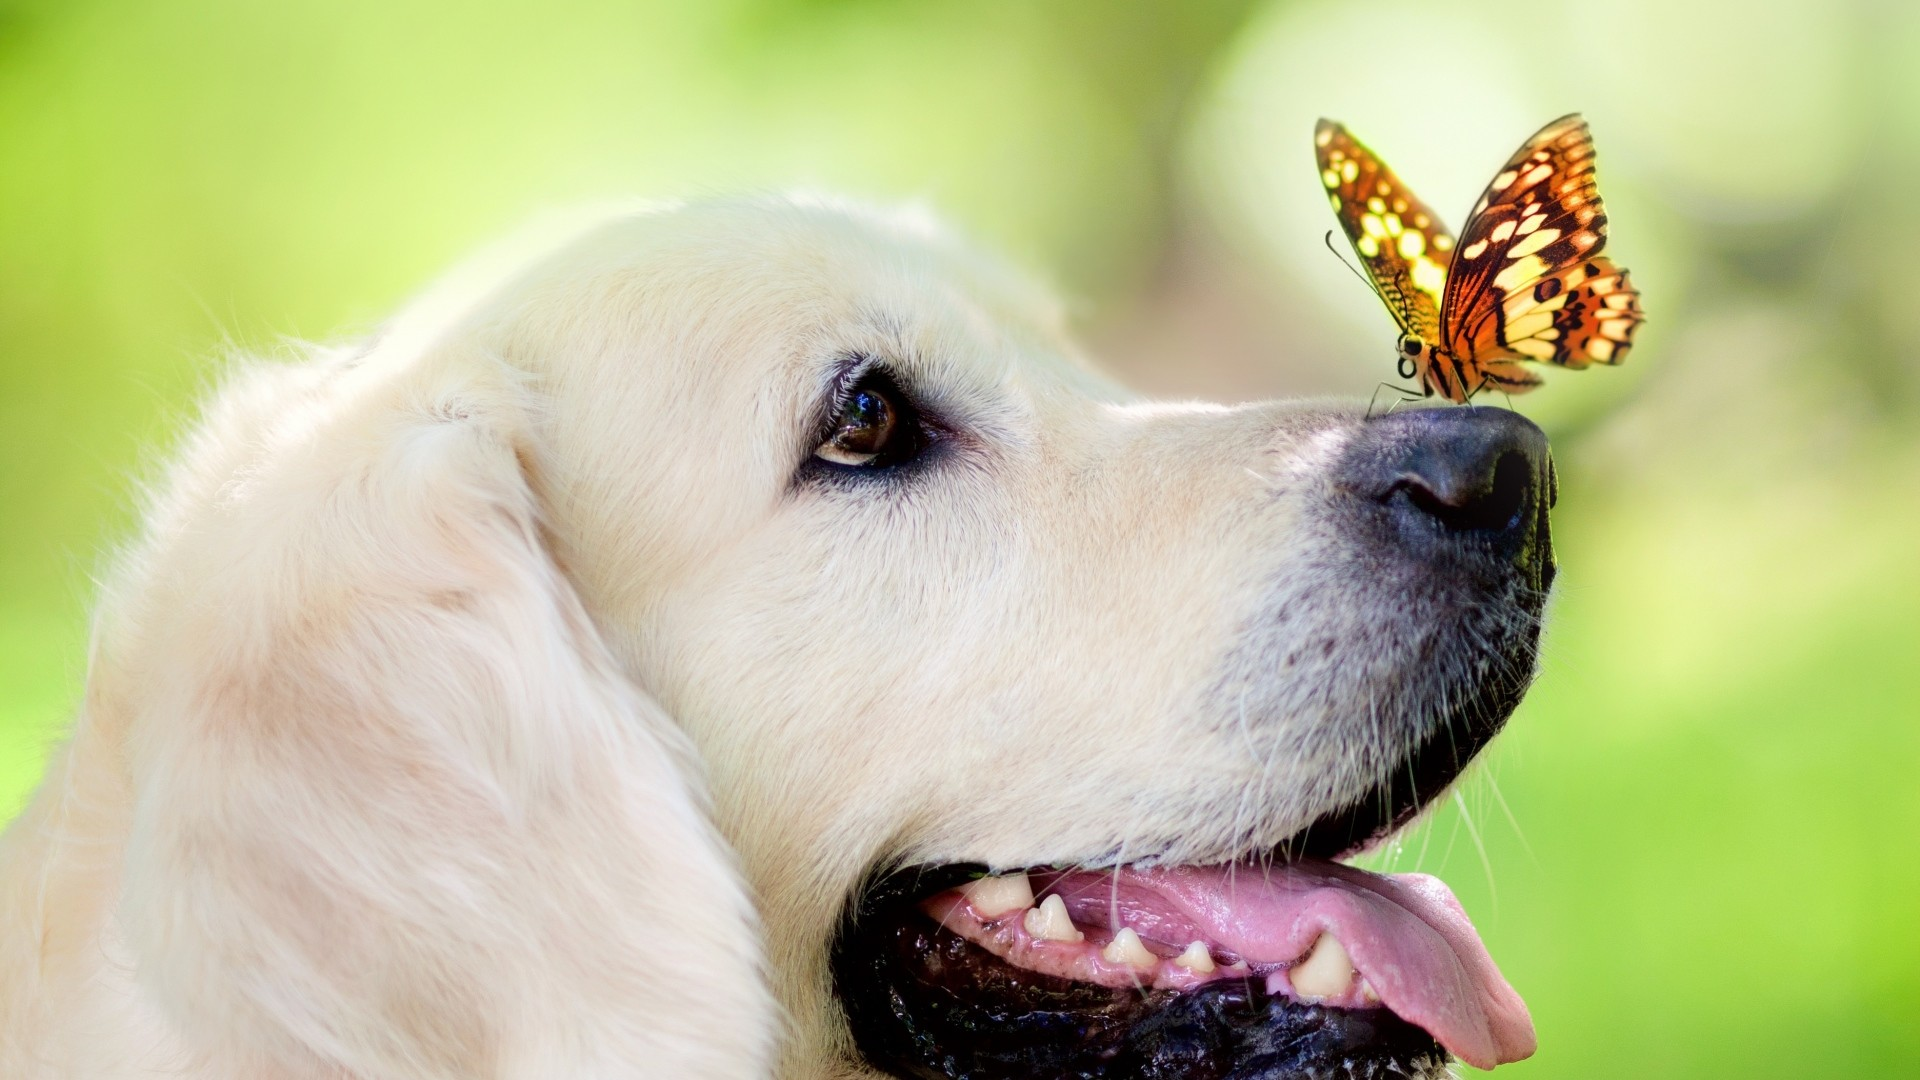 1920x1080 Preview wallpaper dog, muzzle, butterfly, tongue sticking out, spring,  summer